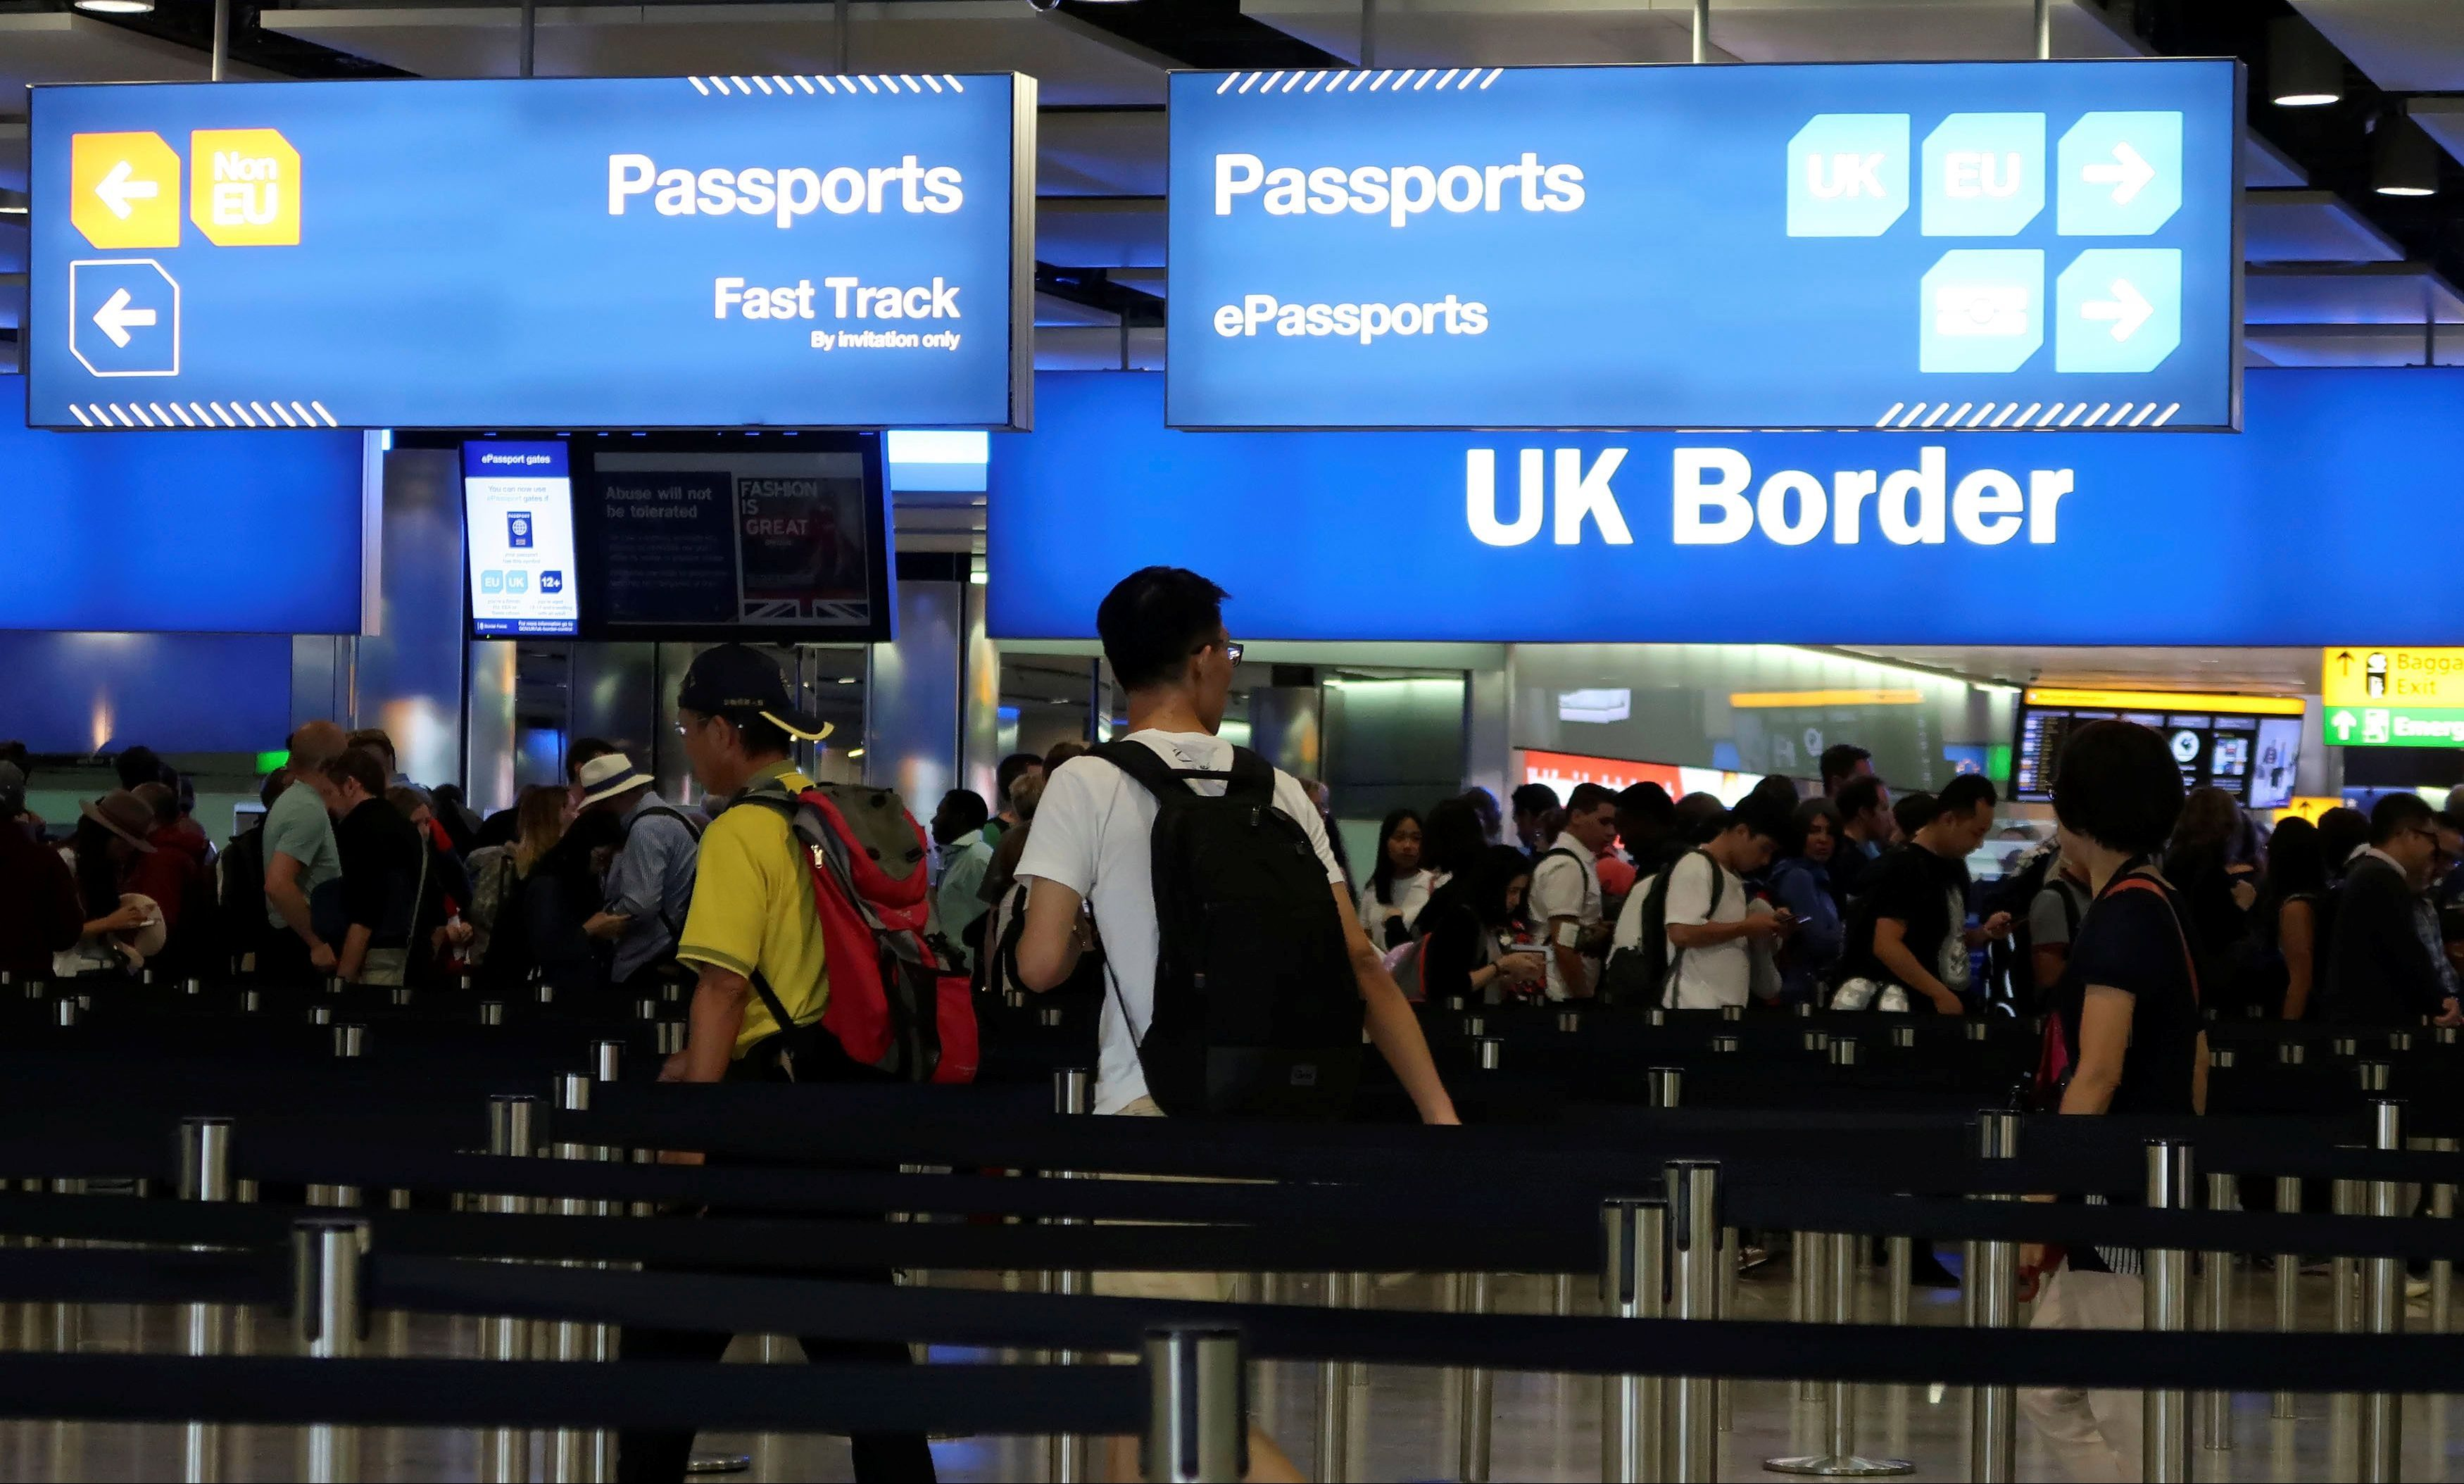 UK Border control is seen in Terminal 2 at Heathrow Airport in London, Britain, July 30, 2017.